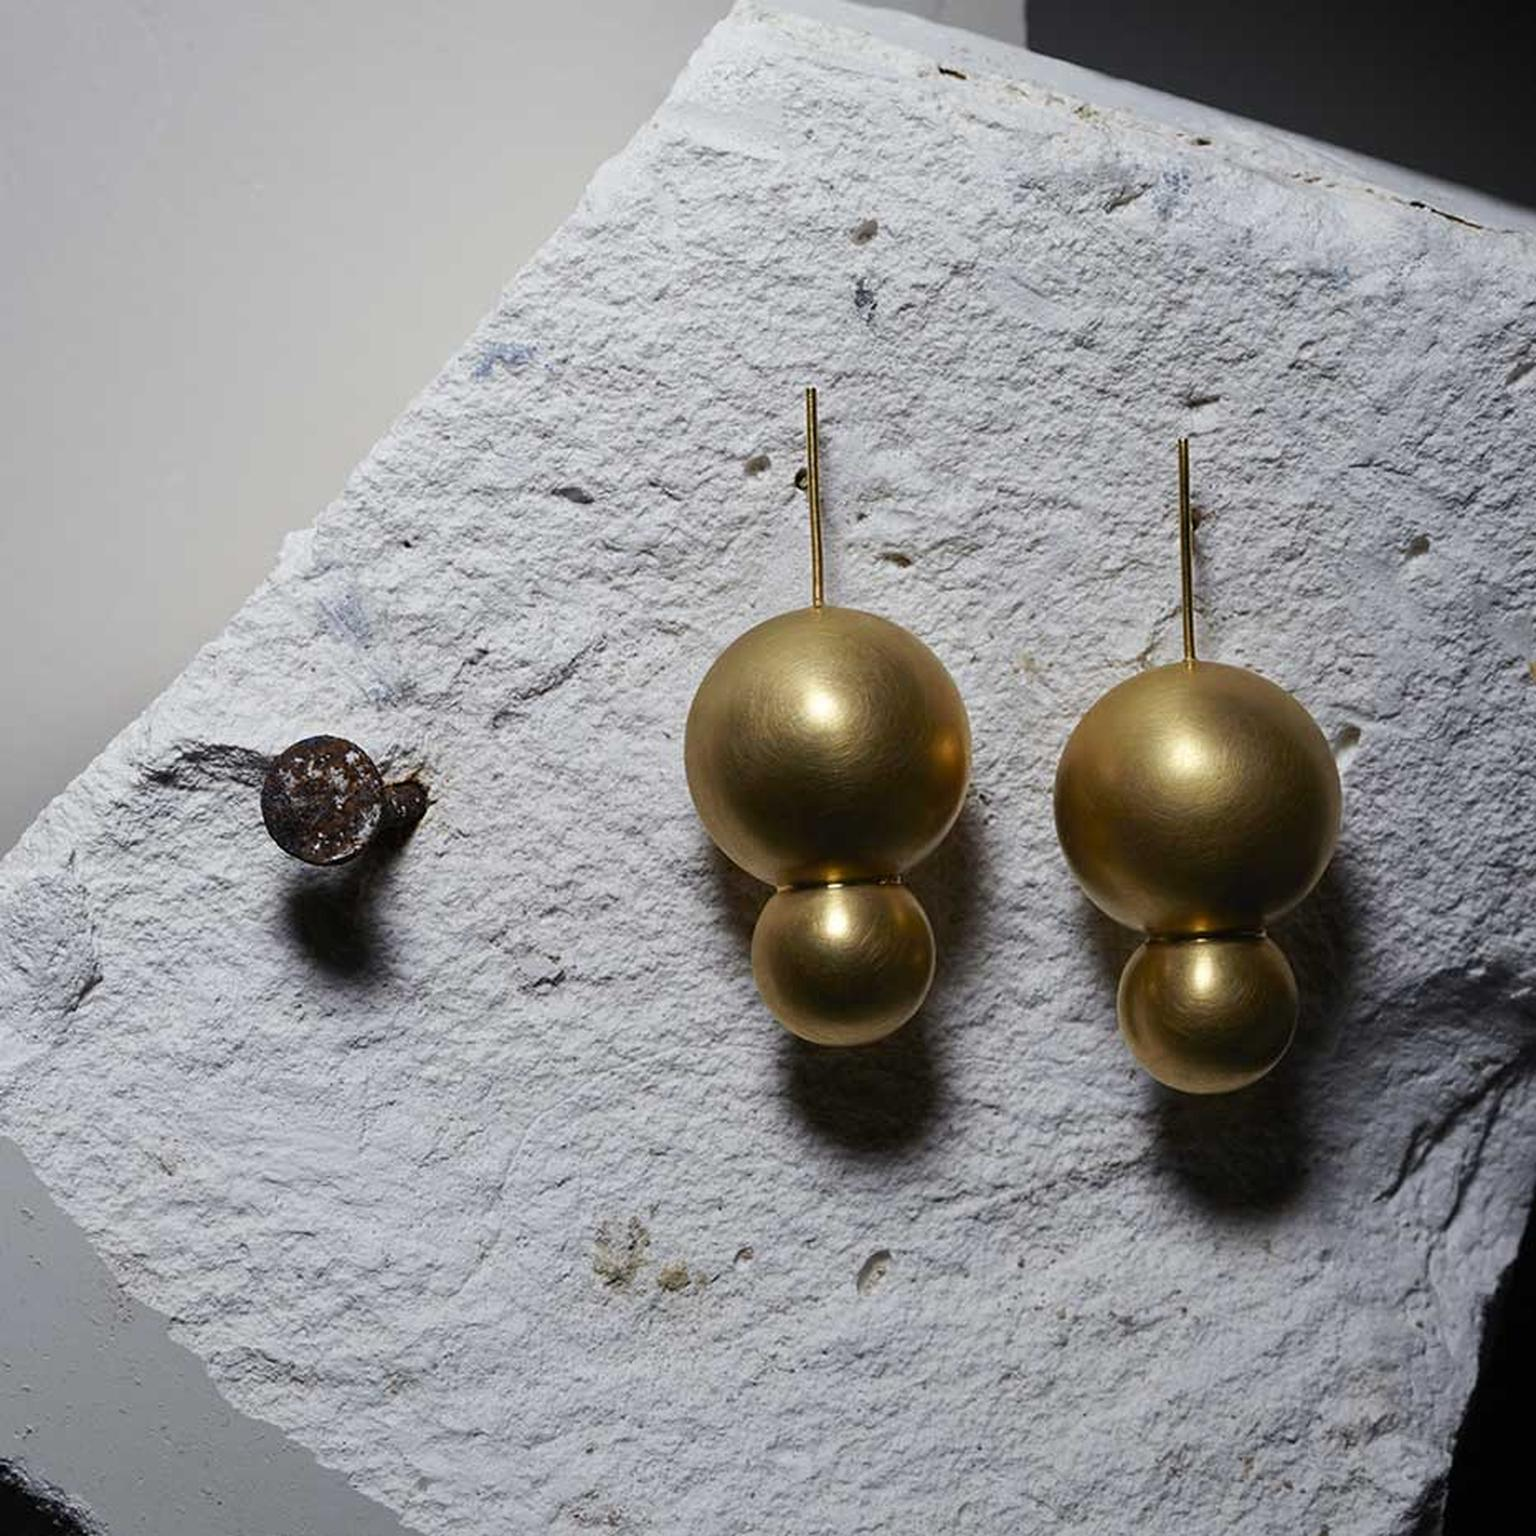 Mara Irsara Doubling Up earrings in yellow gold-plated silver from the Smart collection.